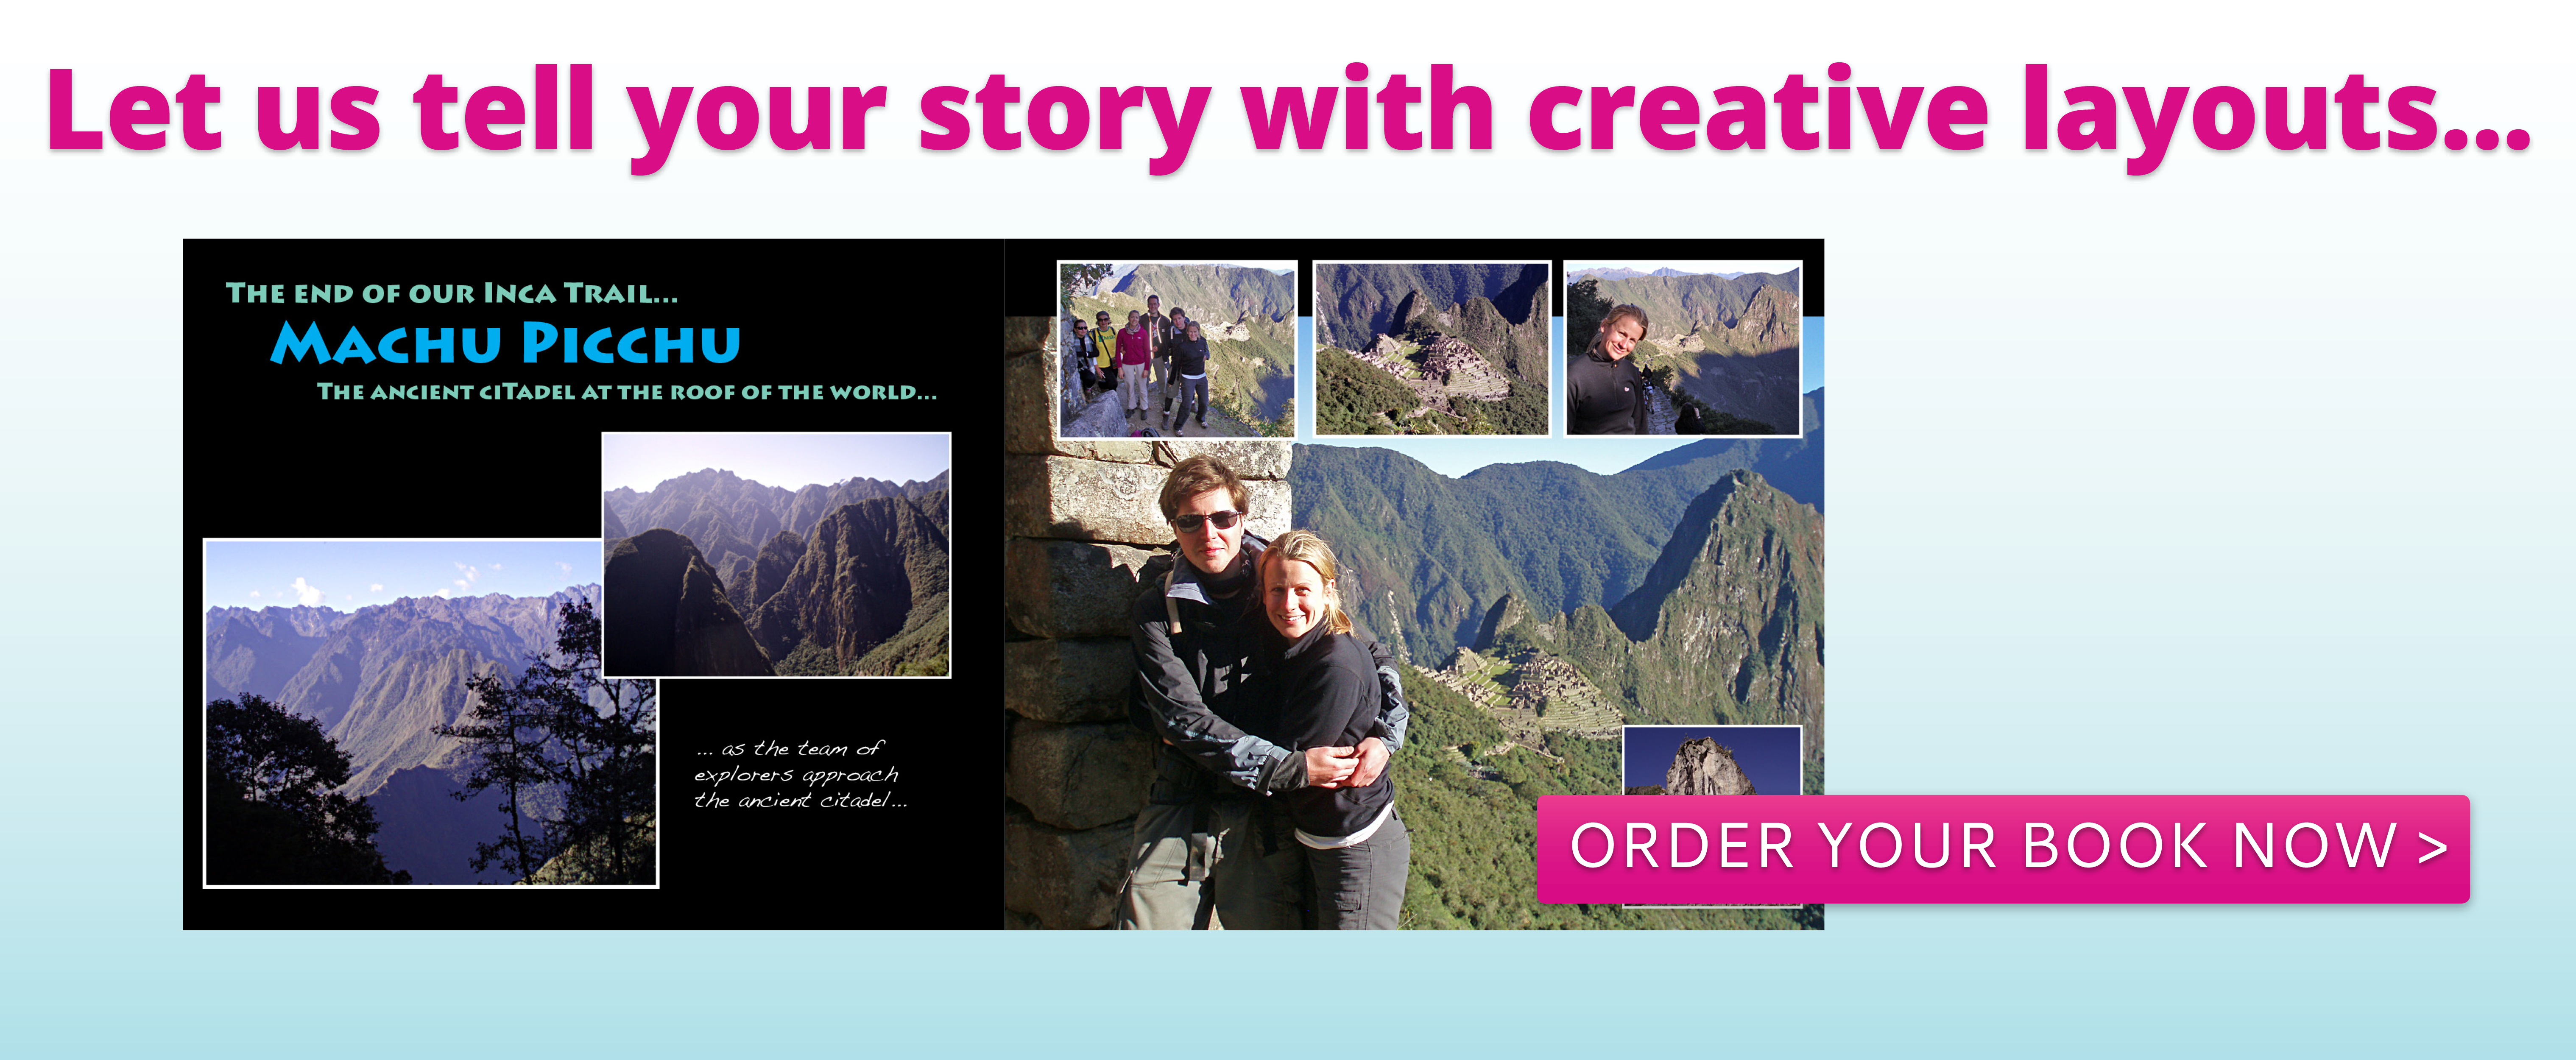 Let us tell your story with creative layouts...